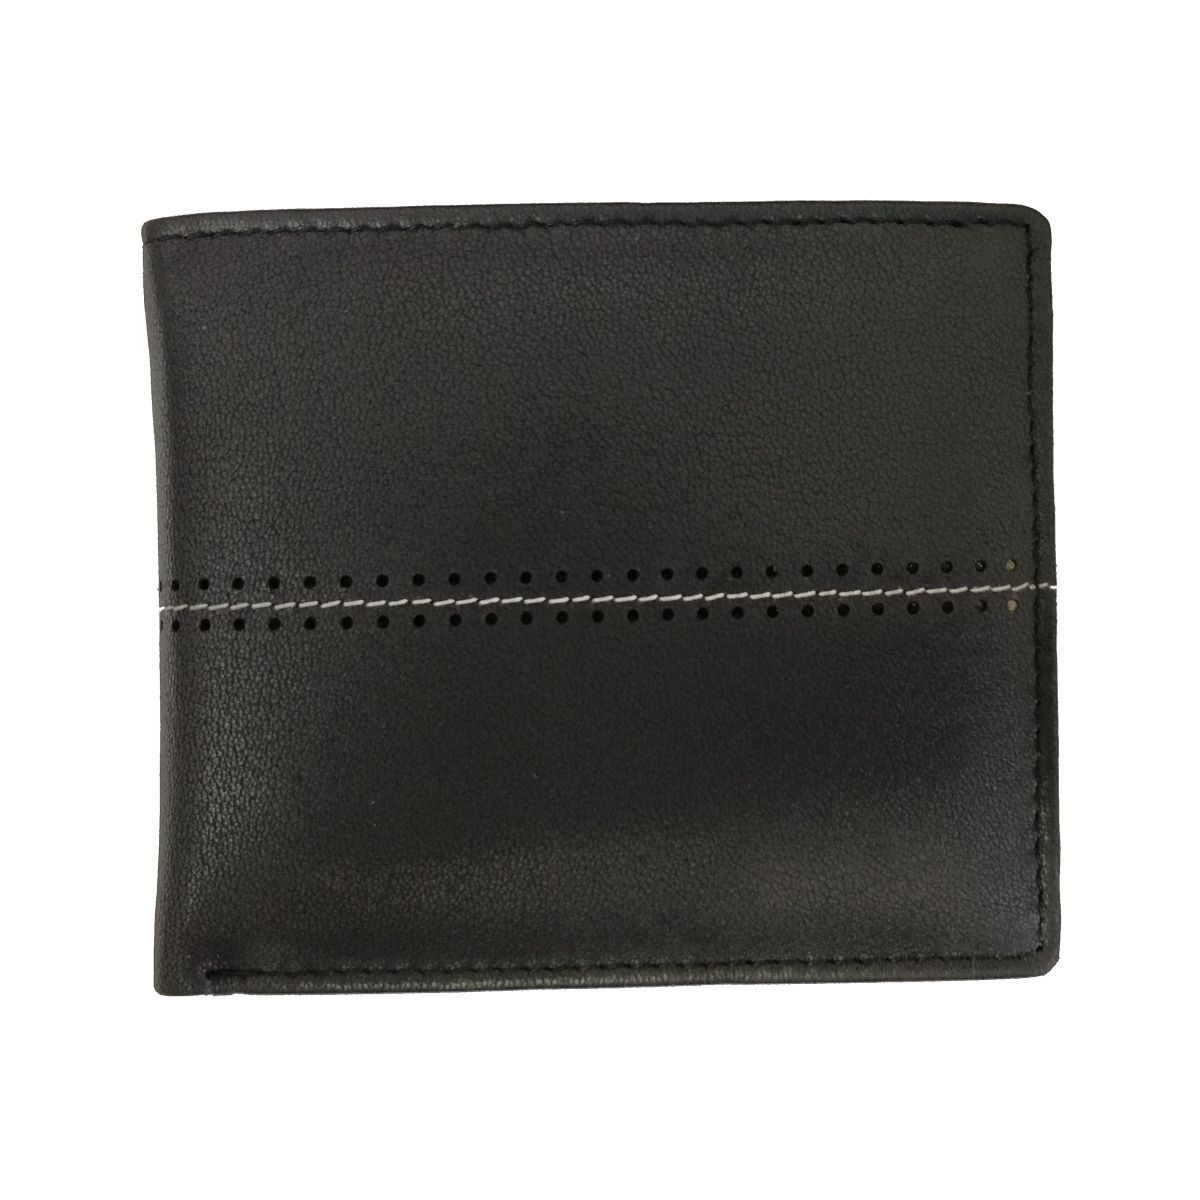 solo Leather Wallet With Horizontal Stitch and Coin Pouch - Black